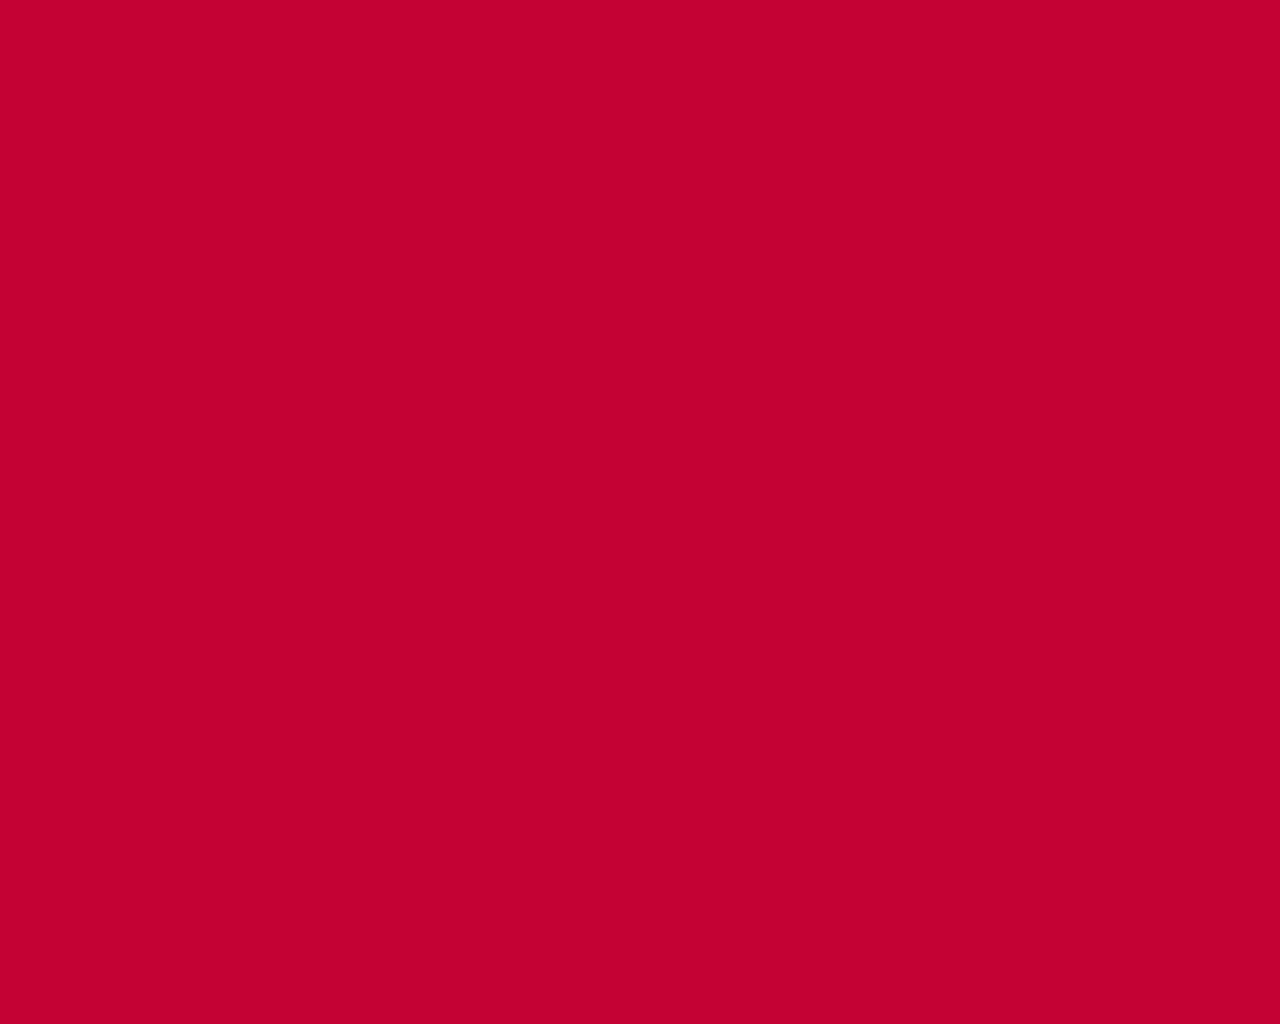 1280x1024 Red NCS Solid Color Background